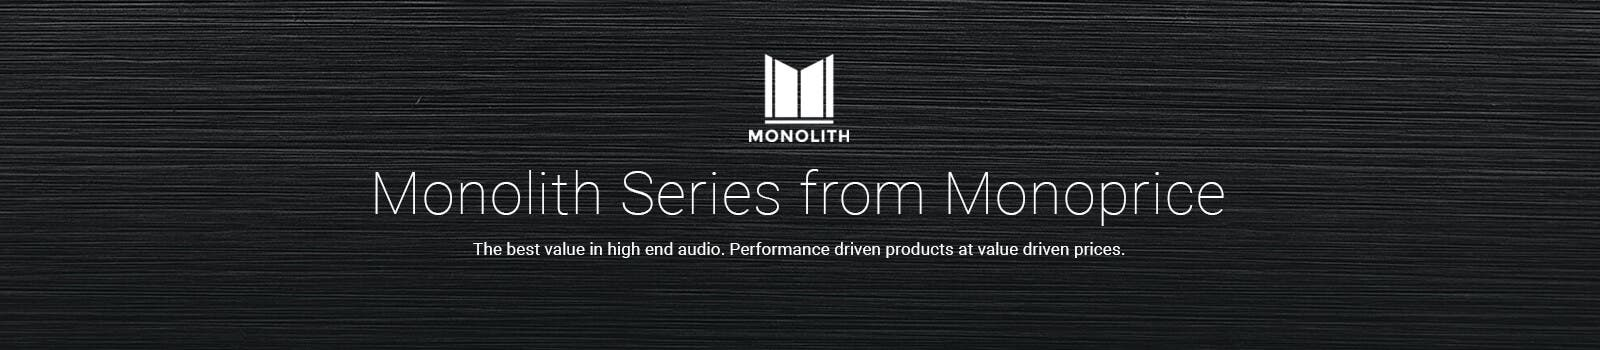 Monolith Series from Monoprice, The best value in high end audio, Performance driven products at value driven prices.